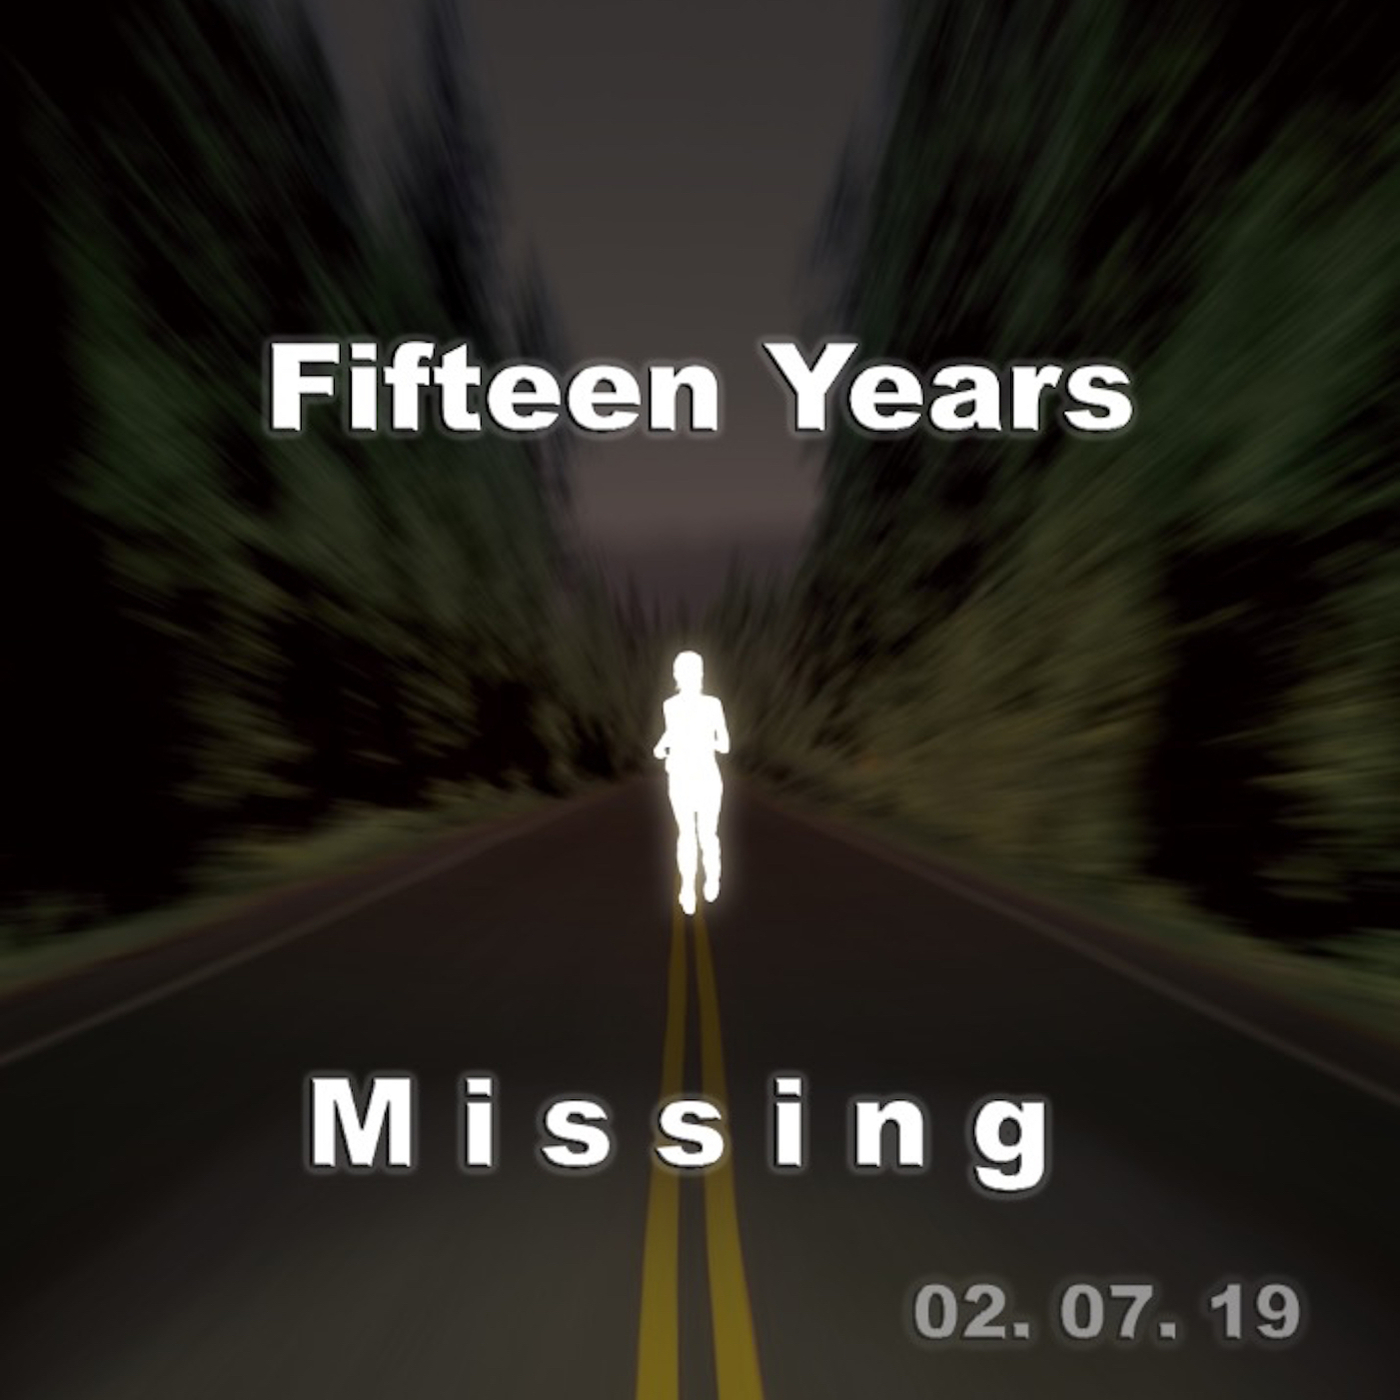 95: Fifteen Years Missing